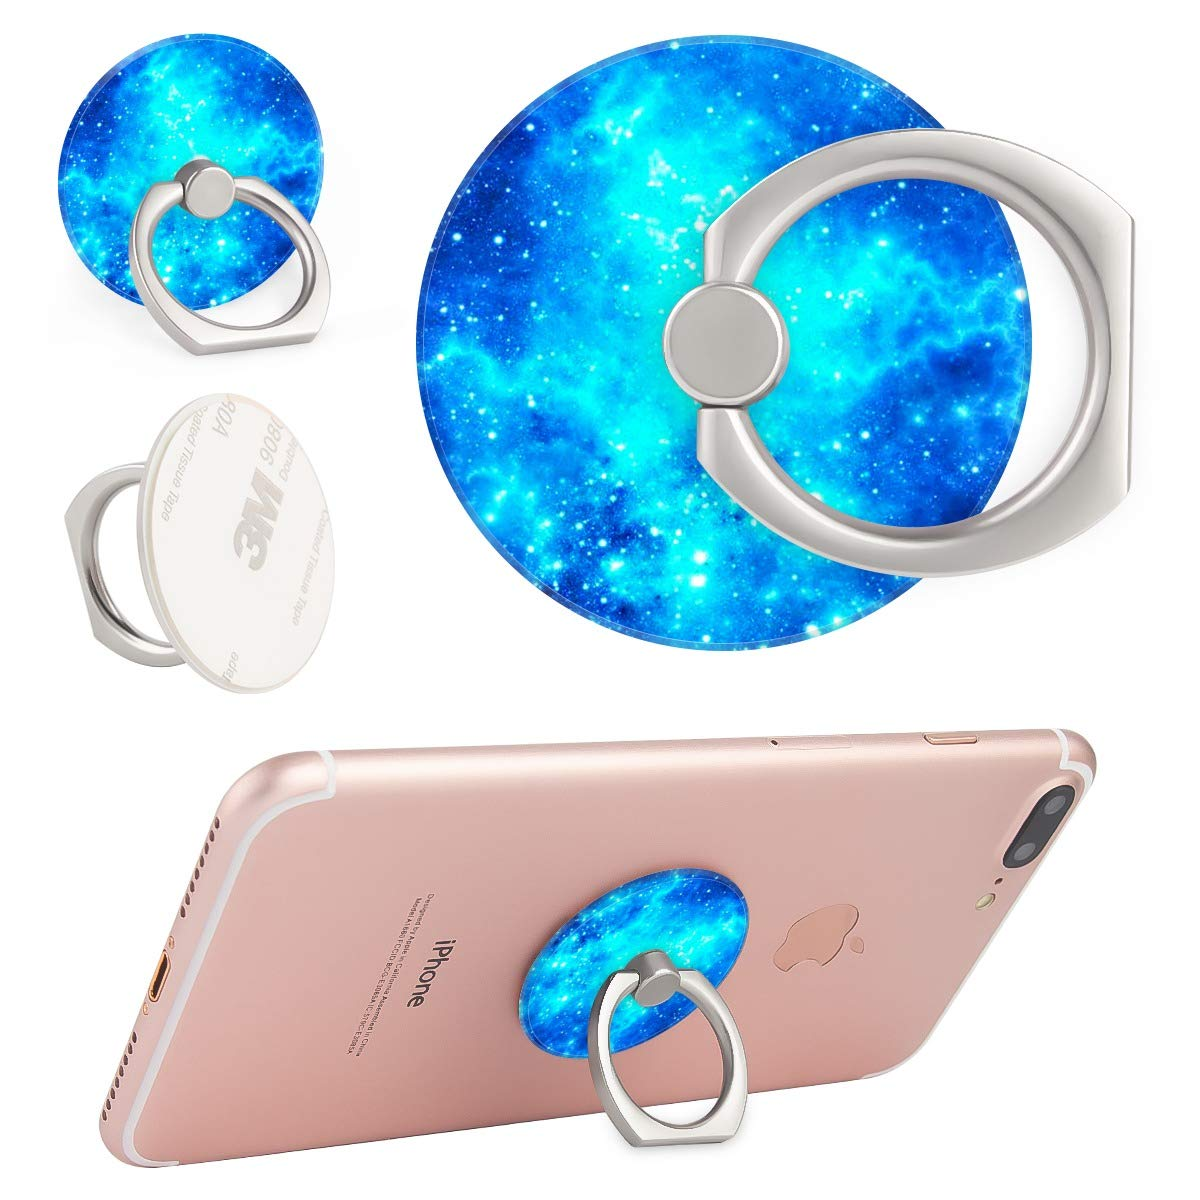 Blue Starry Sky Space Galaxy Ring Phone Holder Stand Mounts for iPhone iPad, Samsung Other Smartphones by BoBuBa-L (Image #2)